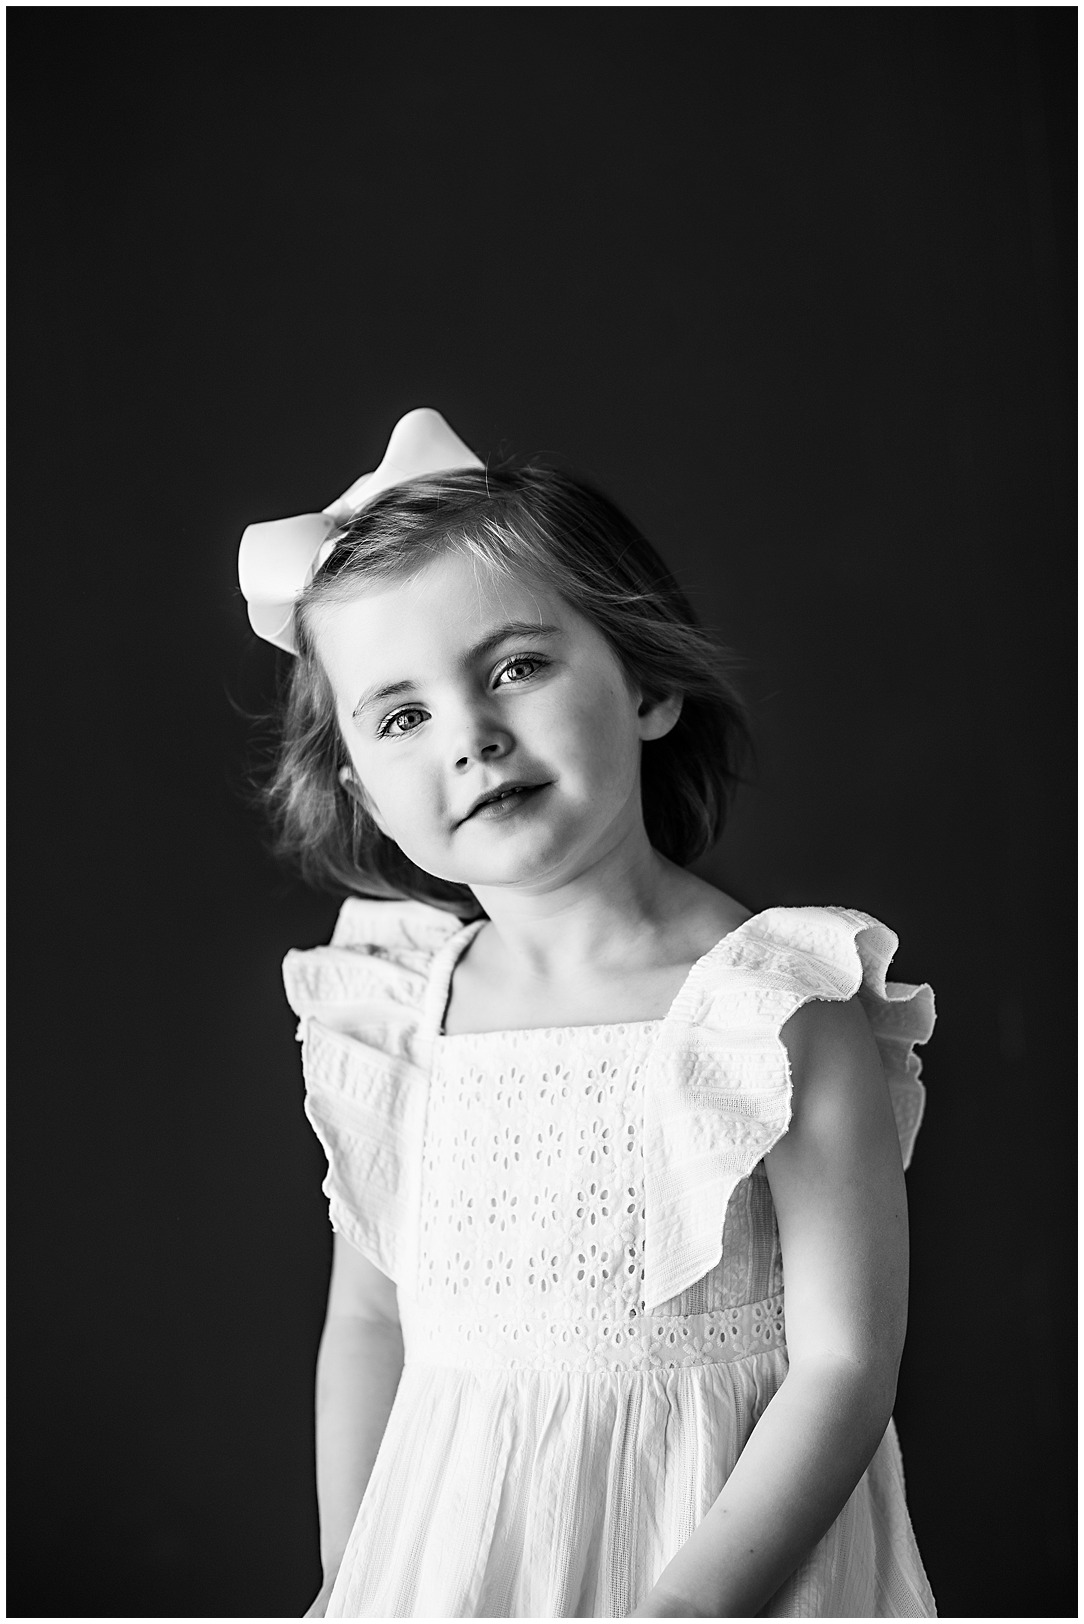 Tessa_marie_photography_atlanta_childrens_fine_art_black_and_white_photography_family_photographer_0016.jpg